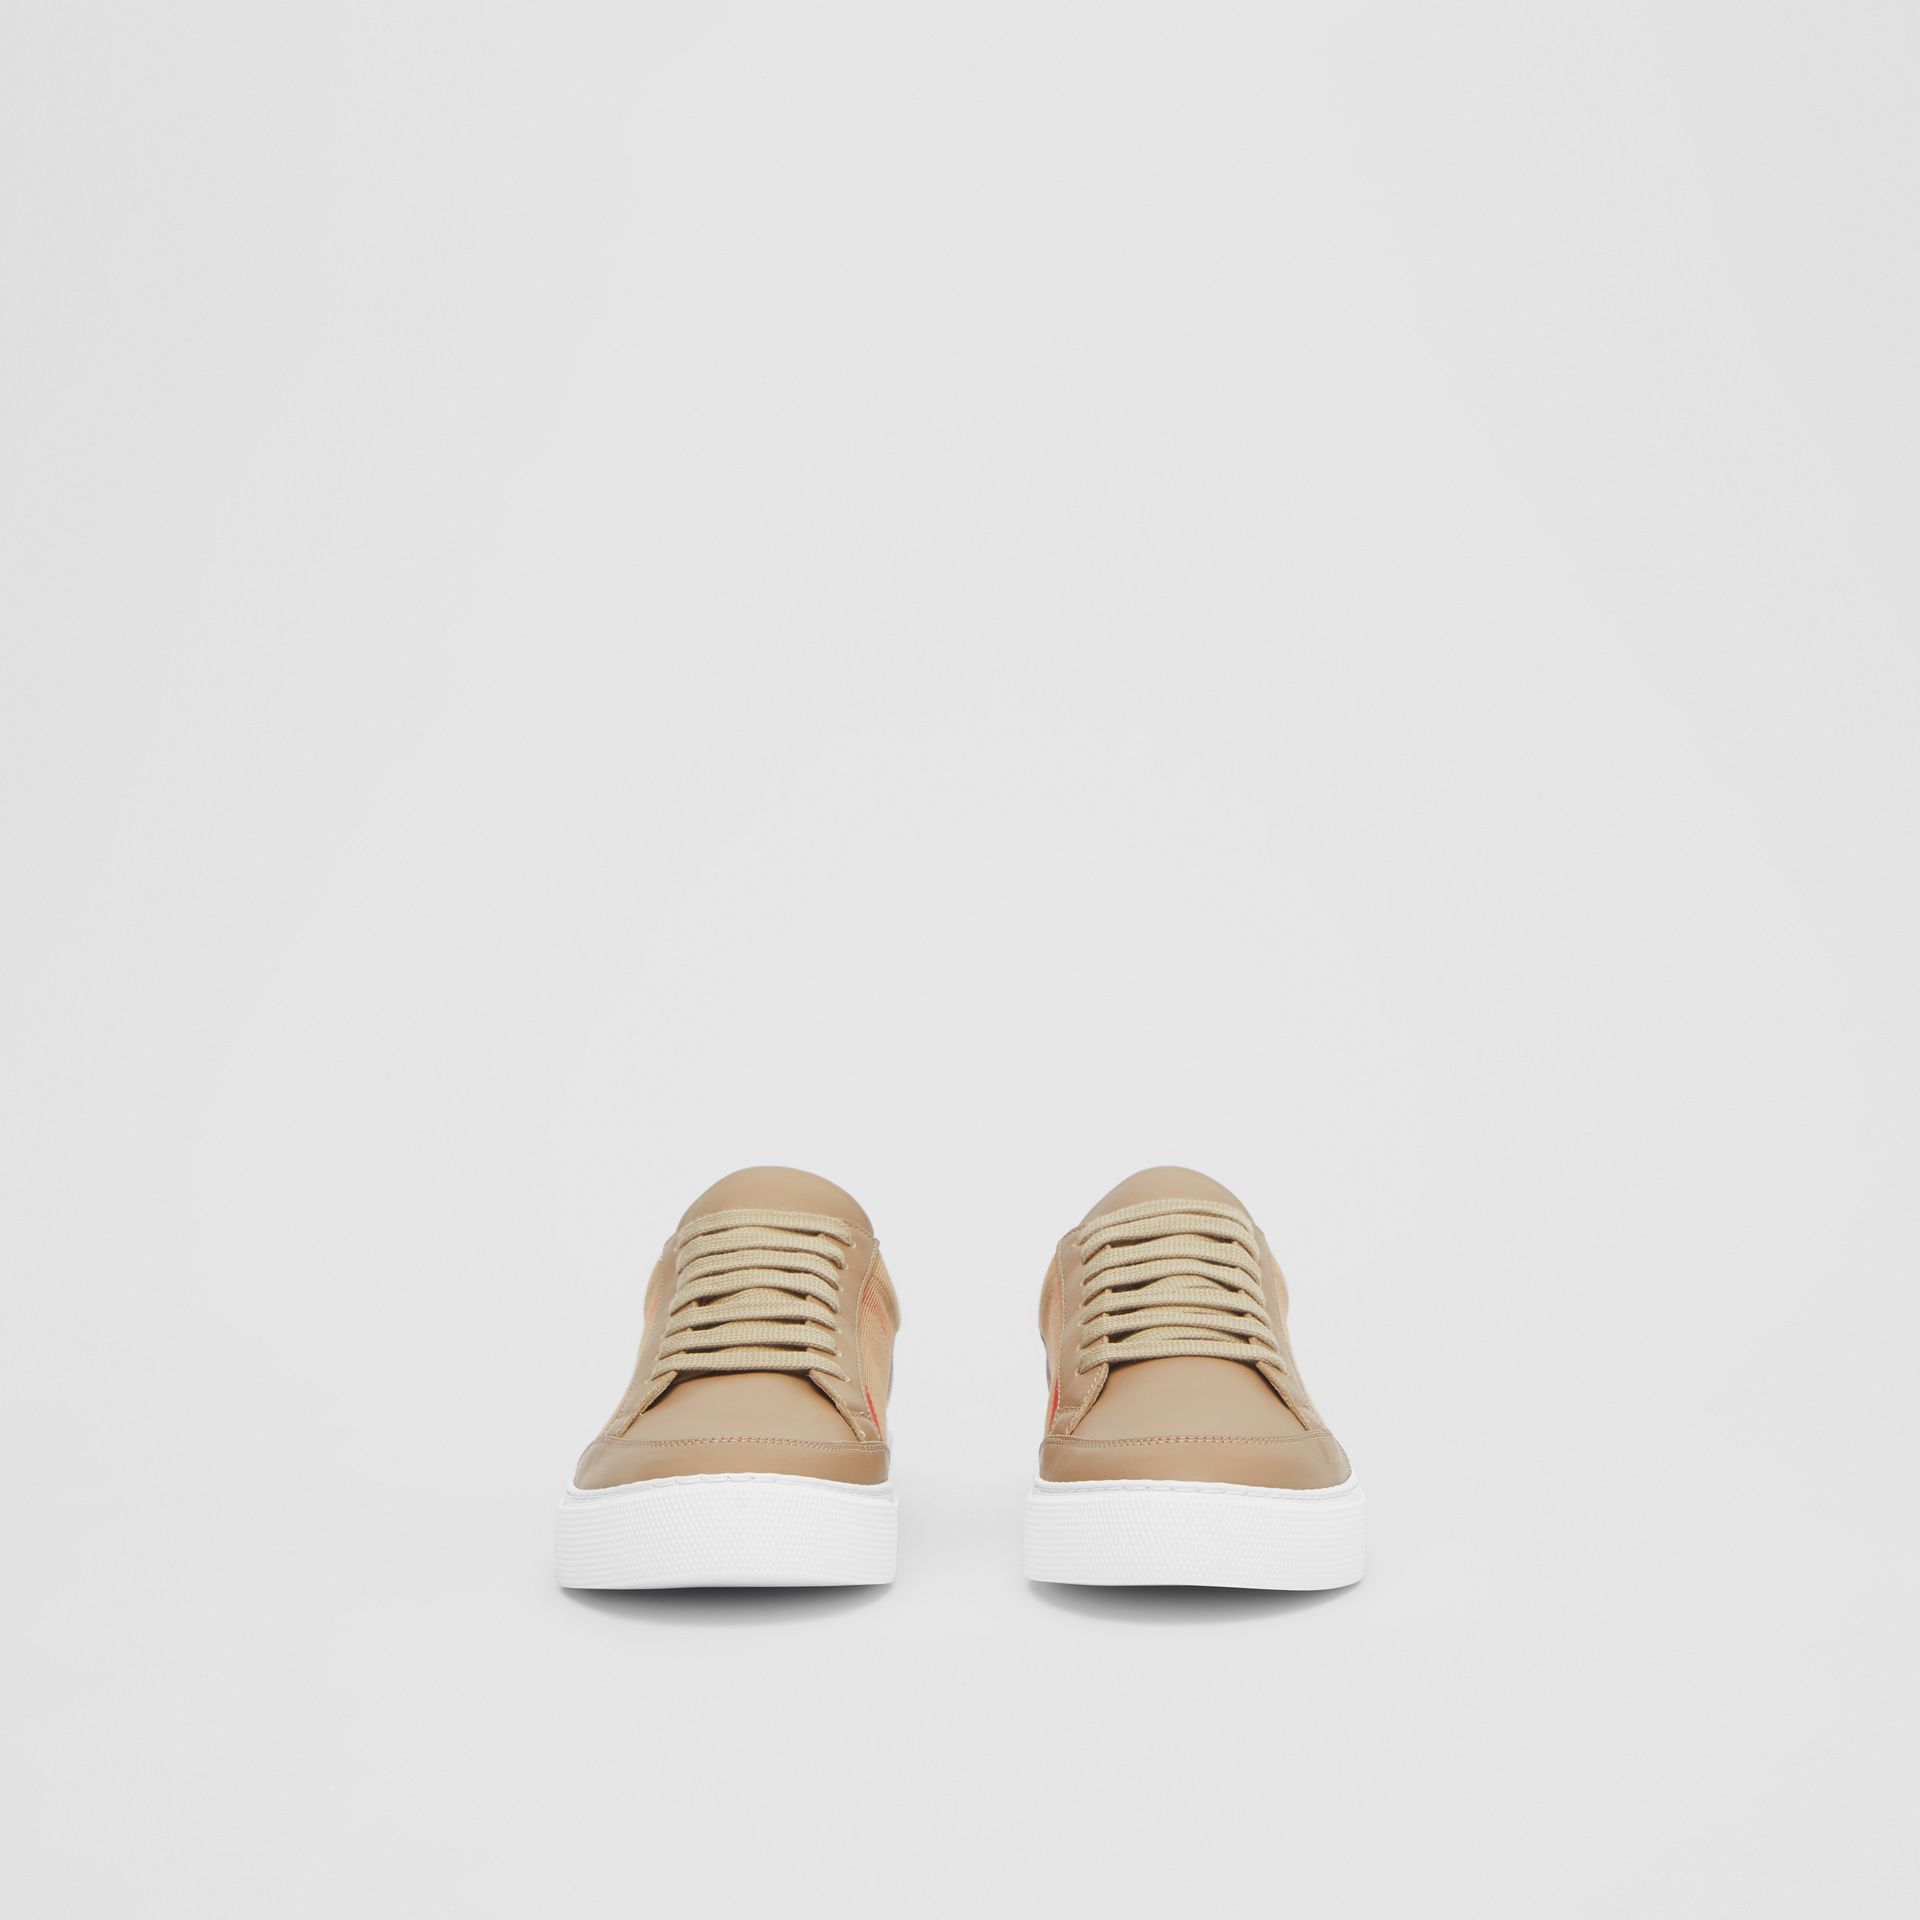 House Check and Leather Sneakers in Tan - Women | Burberry United Kingdom - gallery image 3